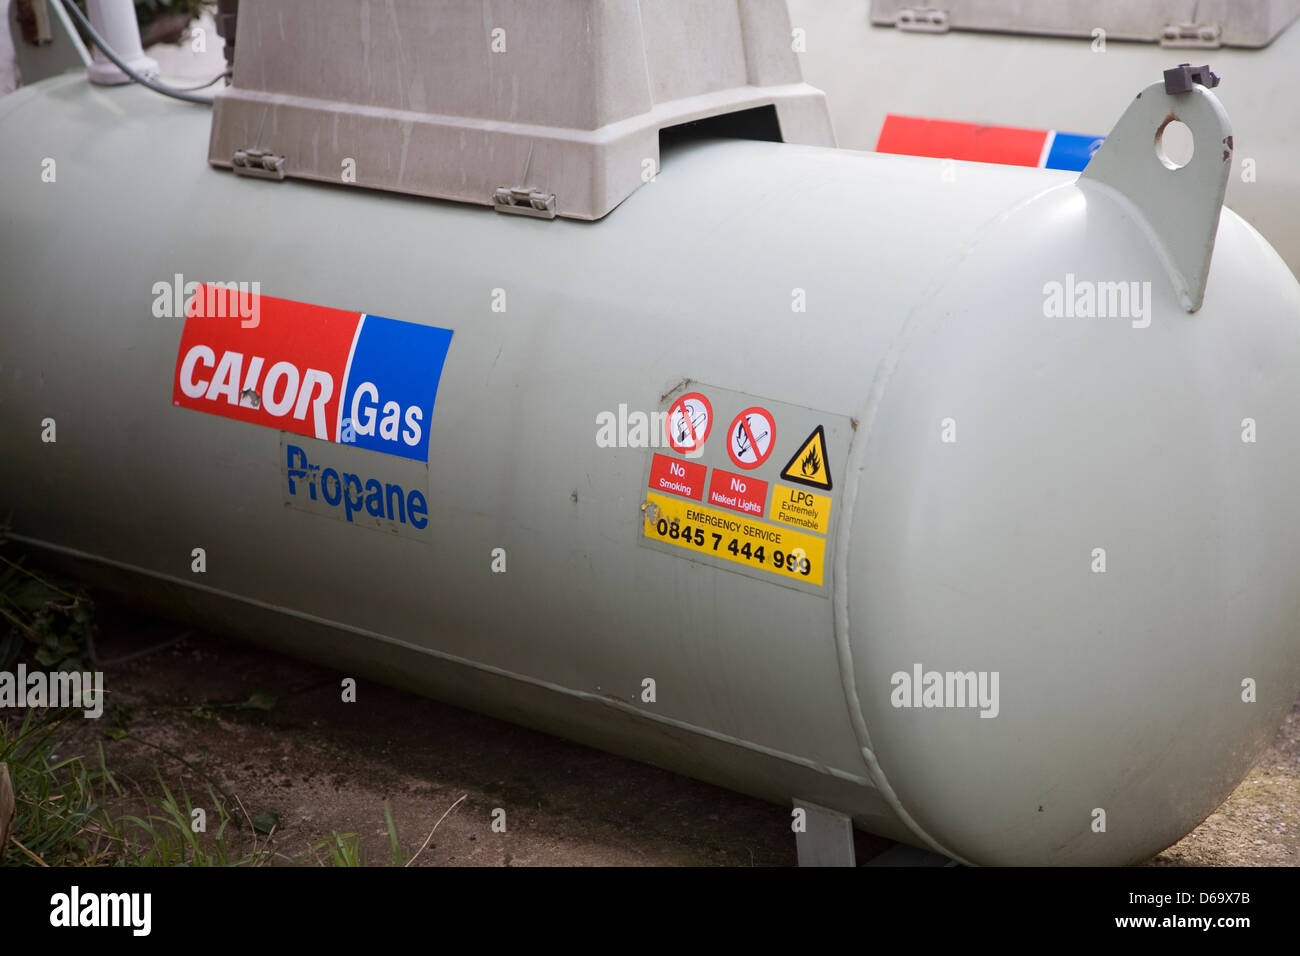 Calor gas propane cylinder for domestic fuel, UK - Stock Image